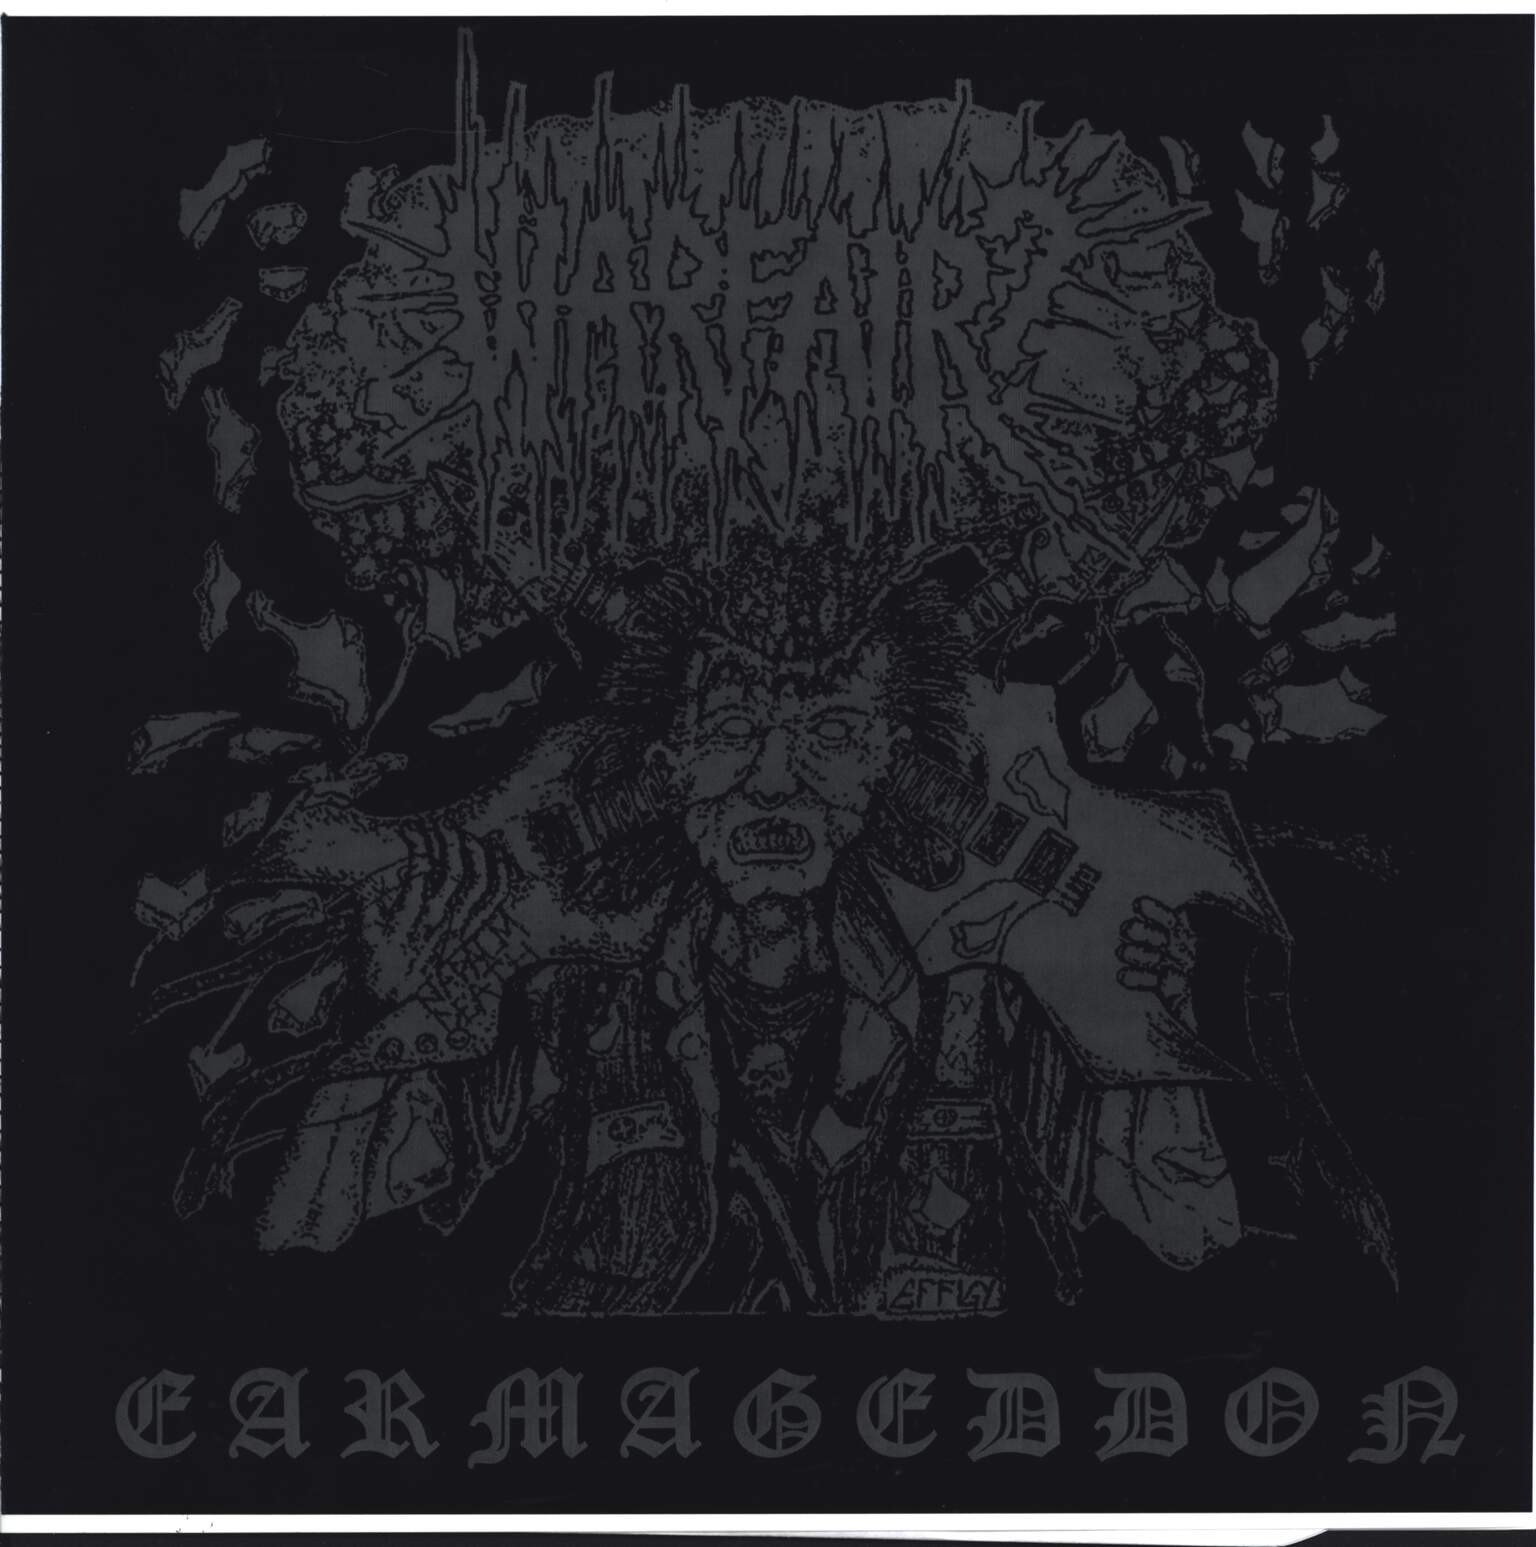 "Warfair?: Earmageddon, 12"" Maxi Single (Vinyl)"